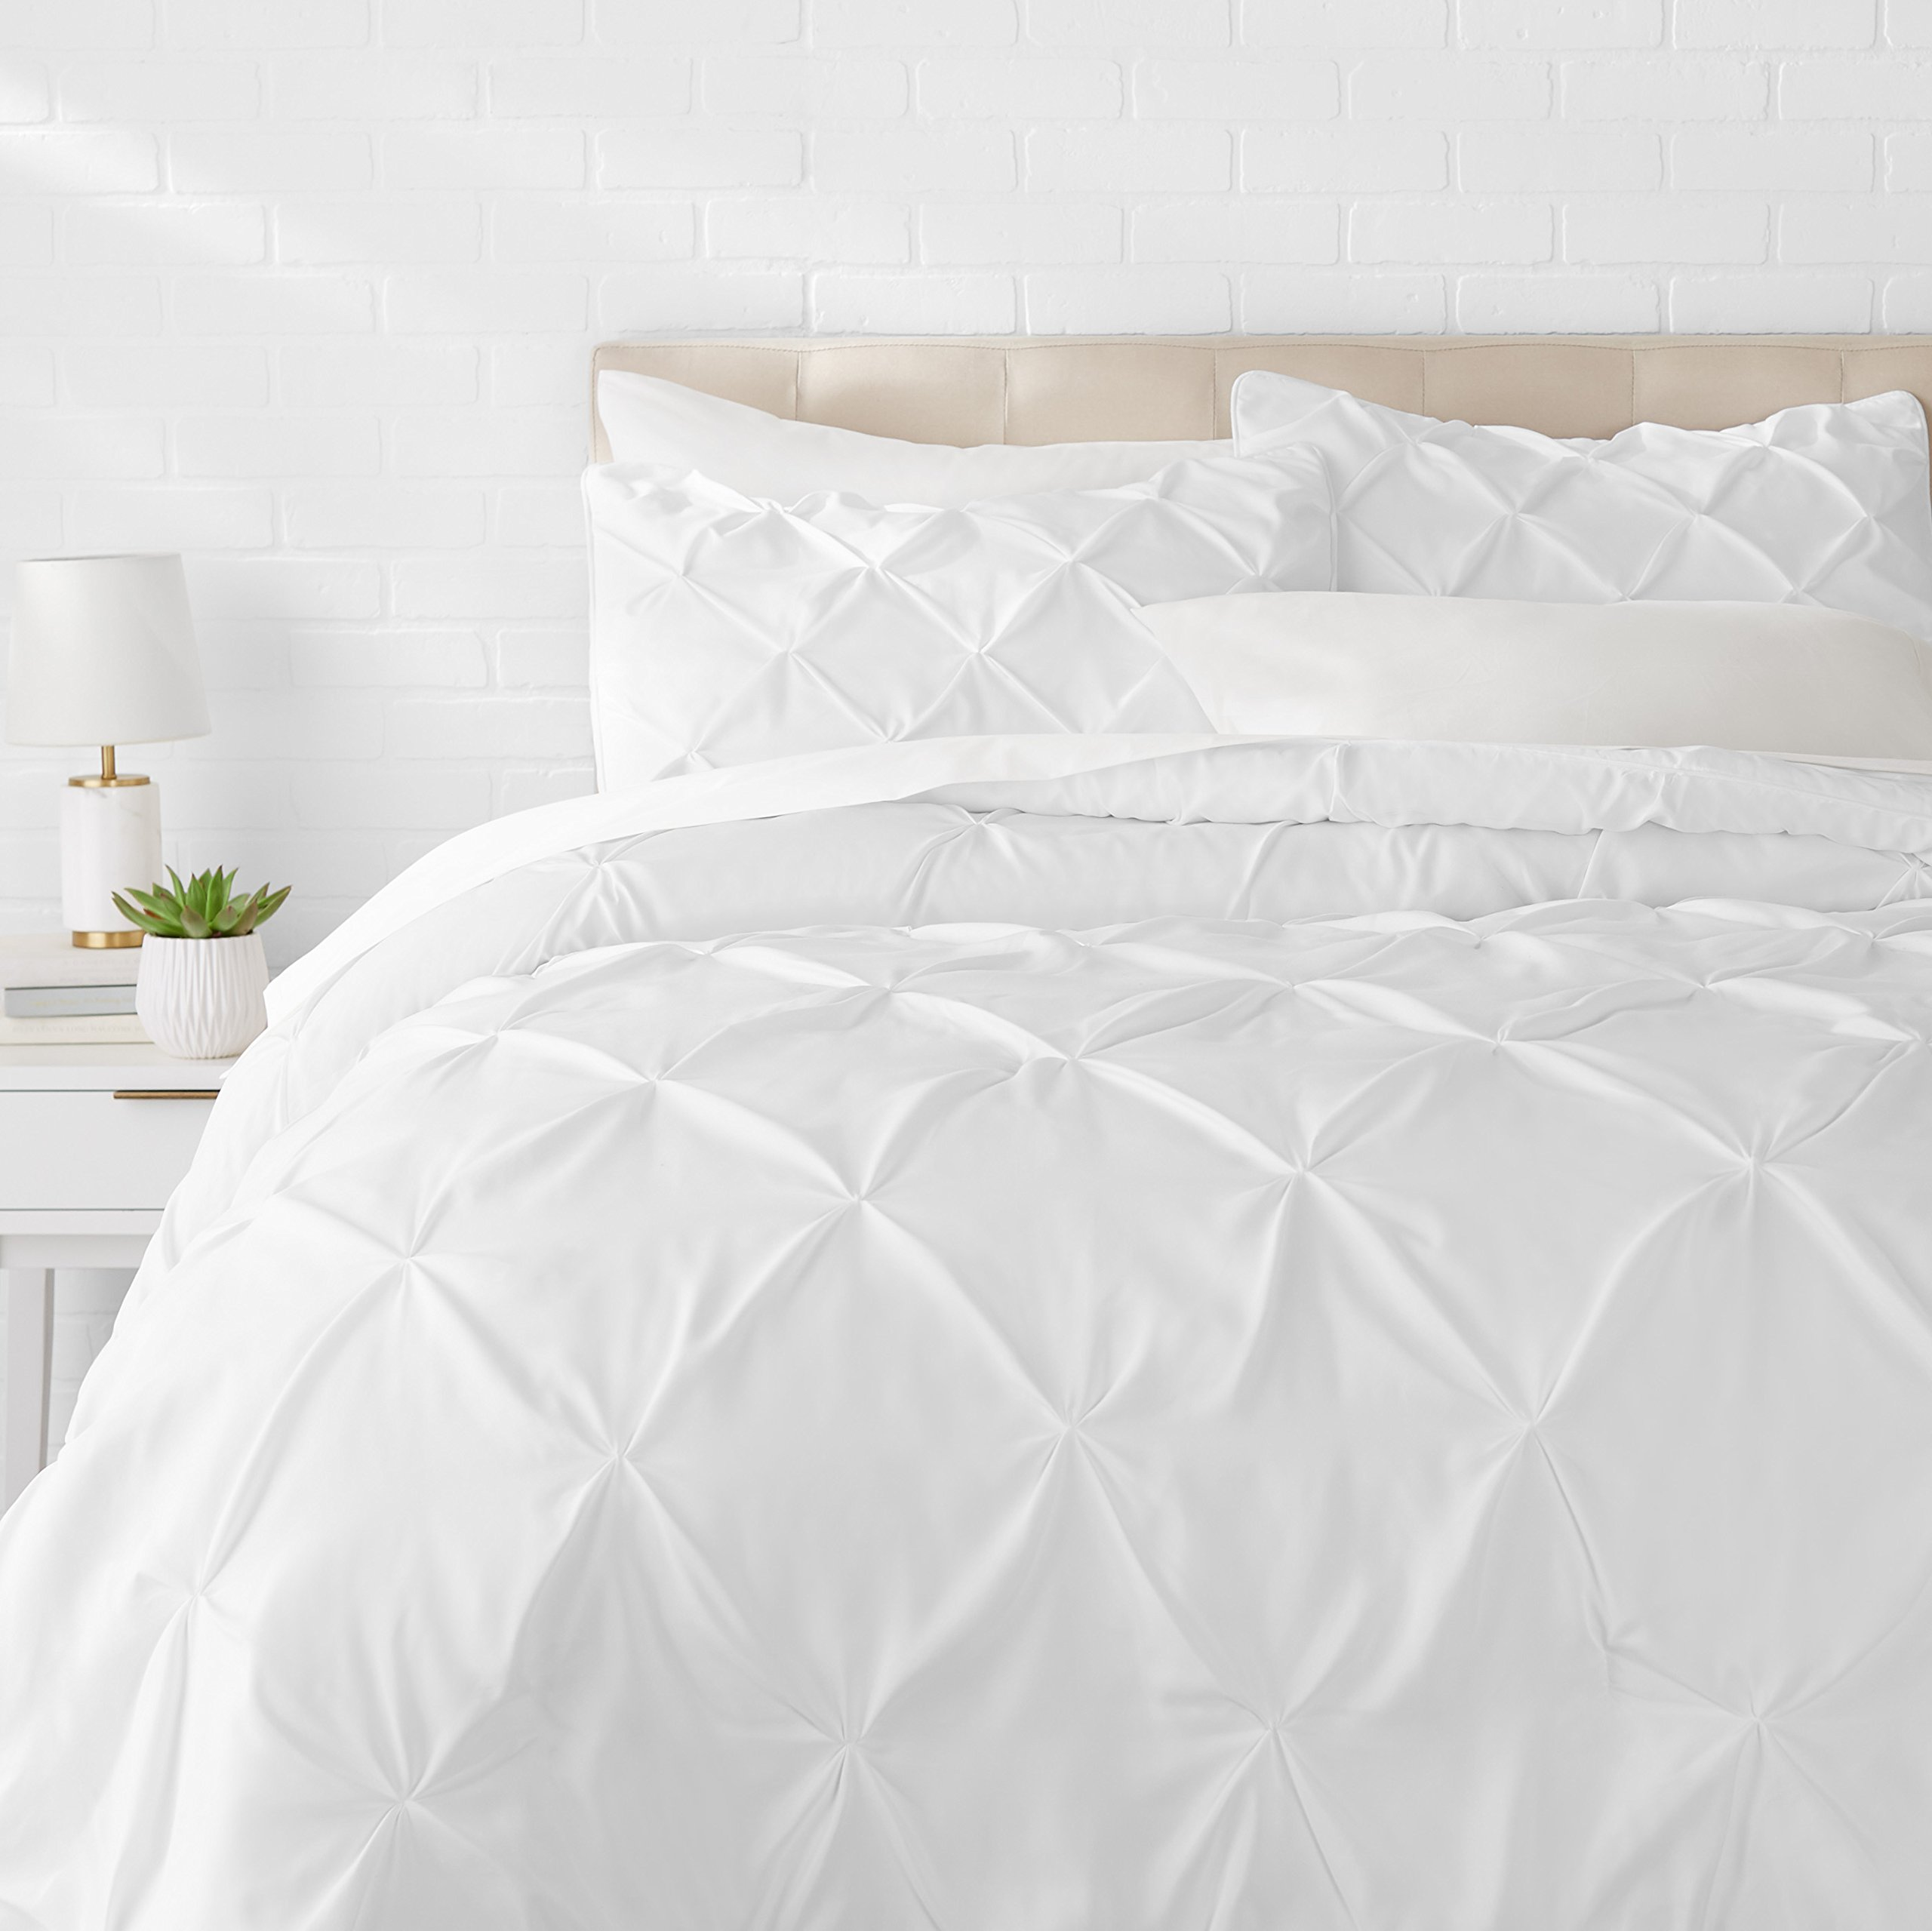 AmazonBasics Pinch Pleat Comforter Set - Full/Queen, Bright White by AmazonBasics